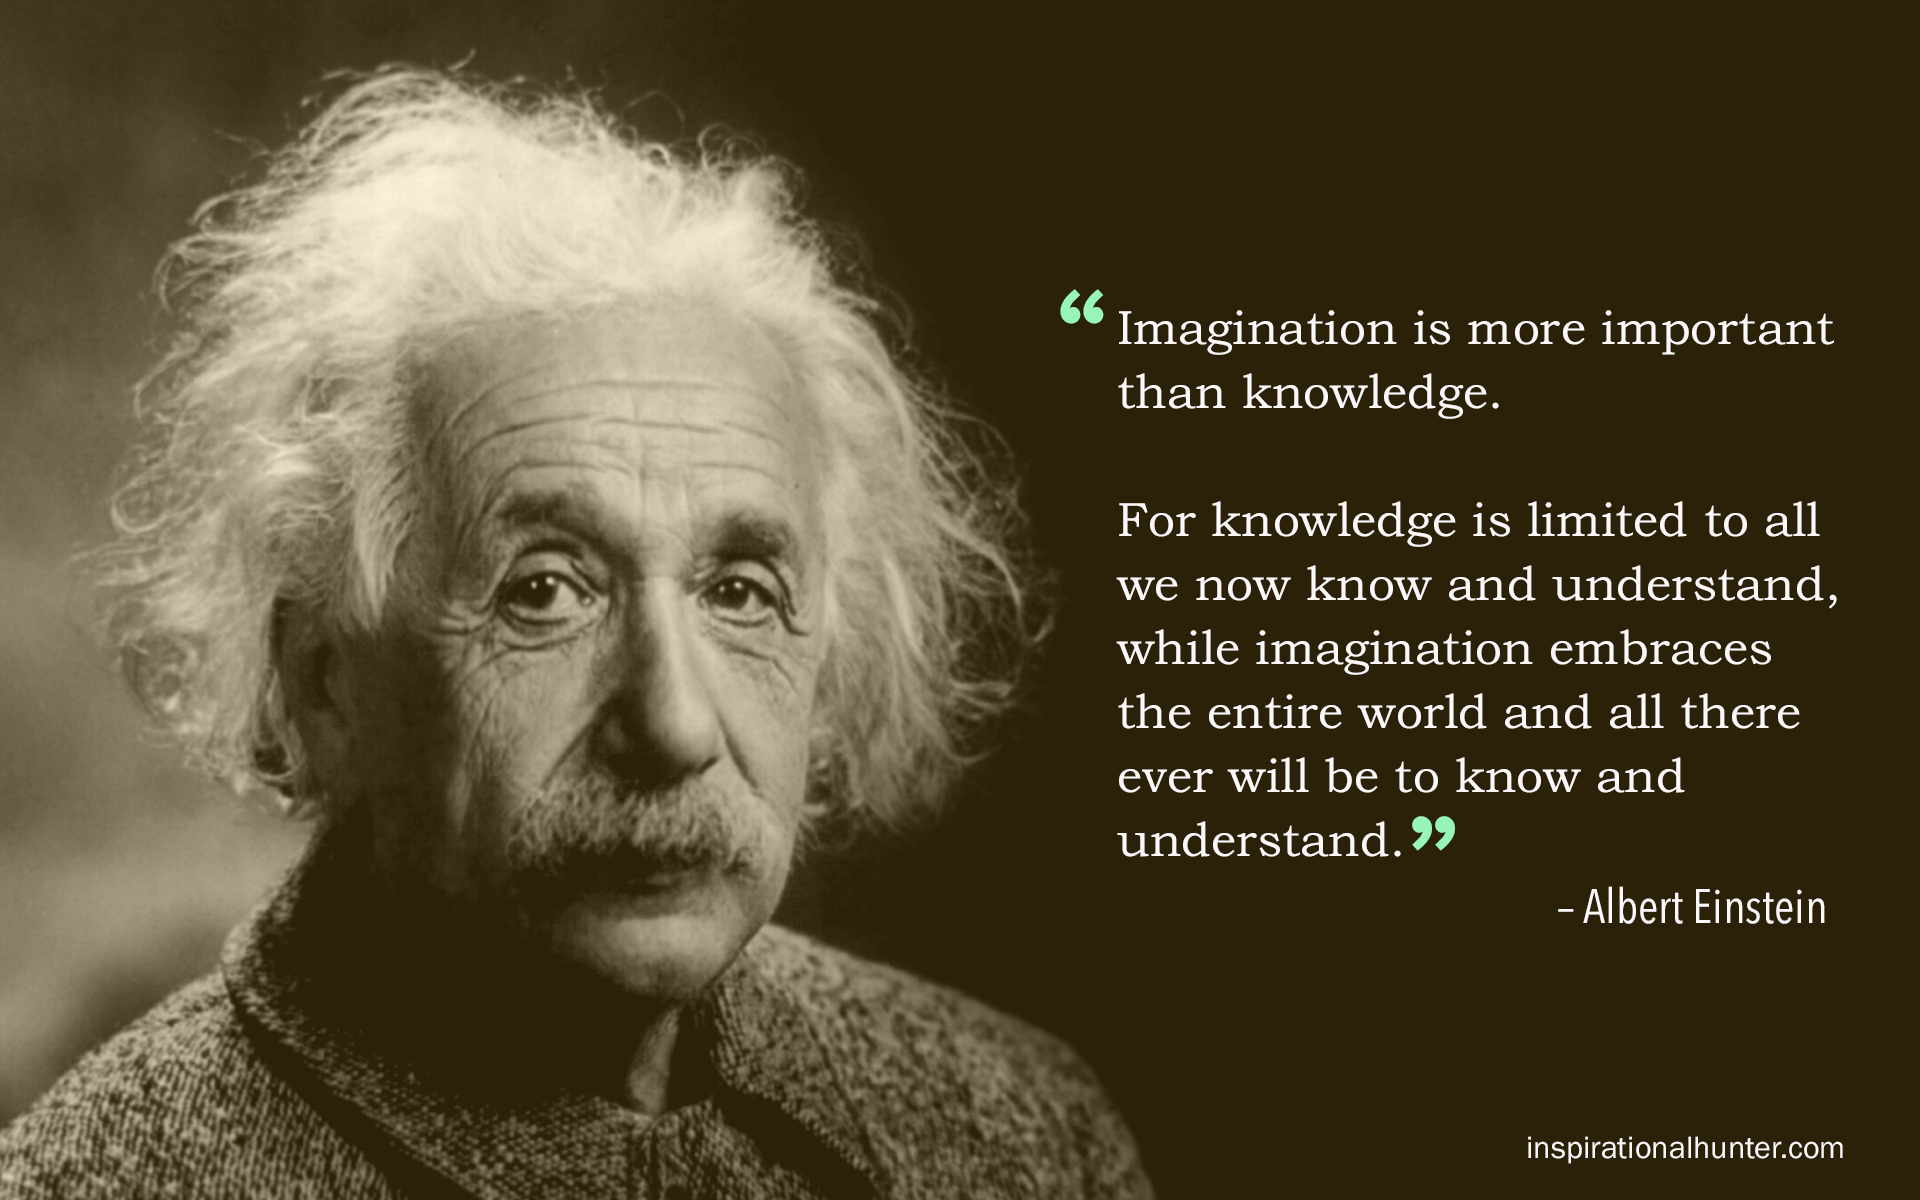 albert einstein quote imagination is more important than